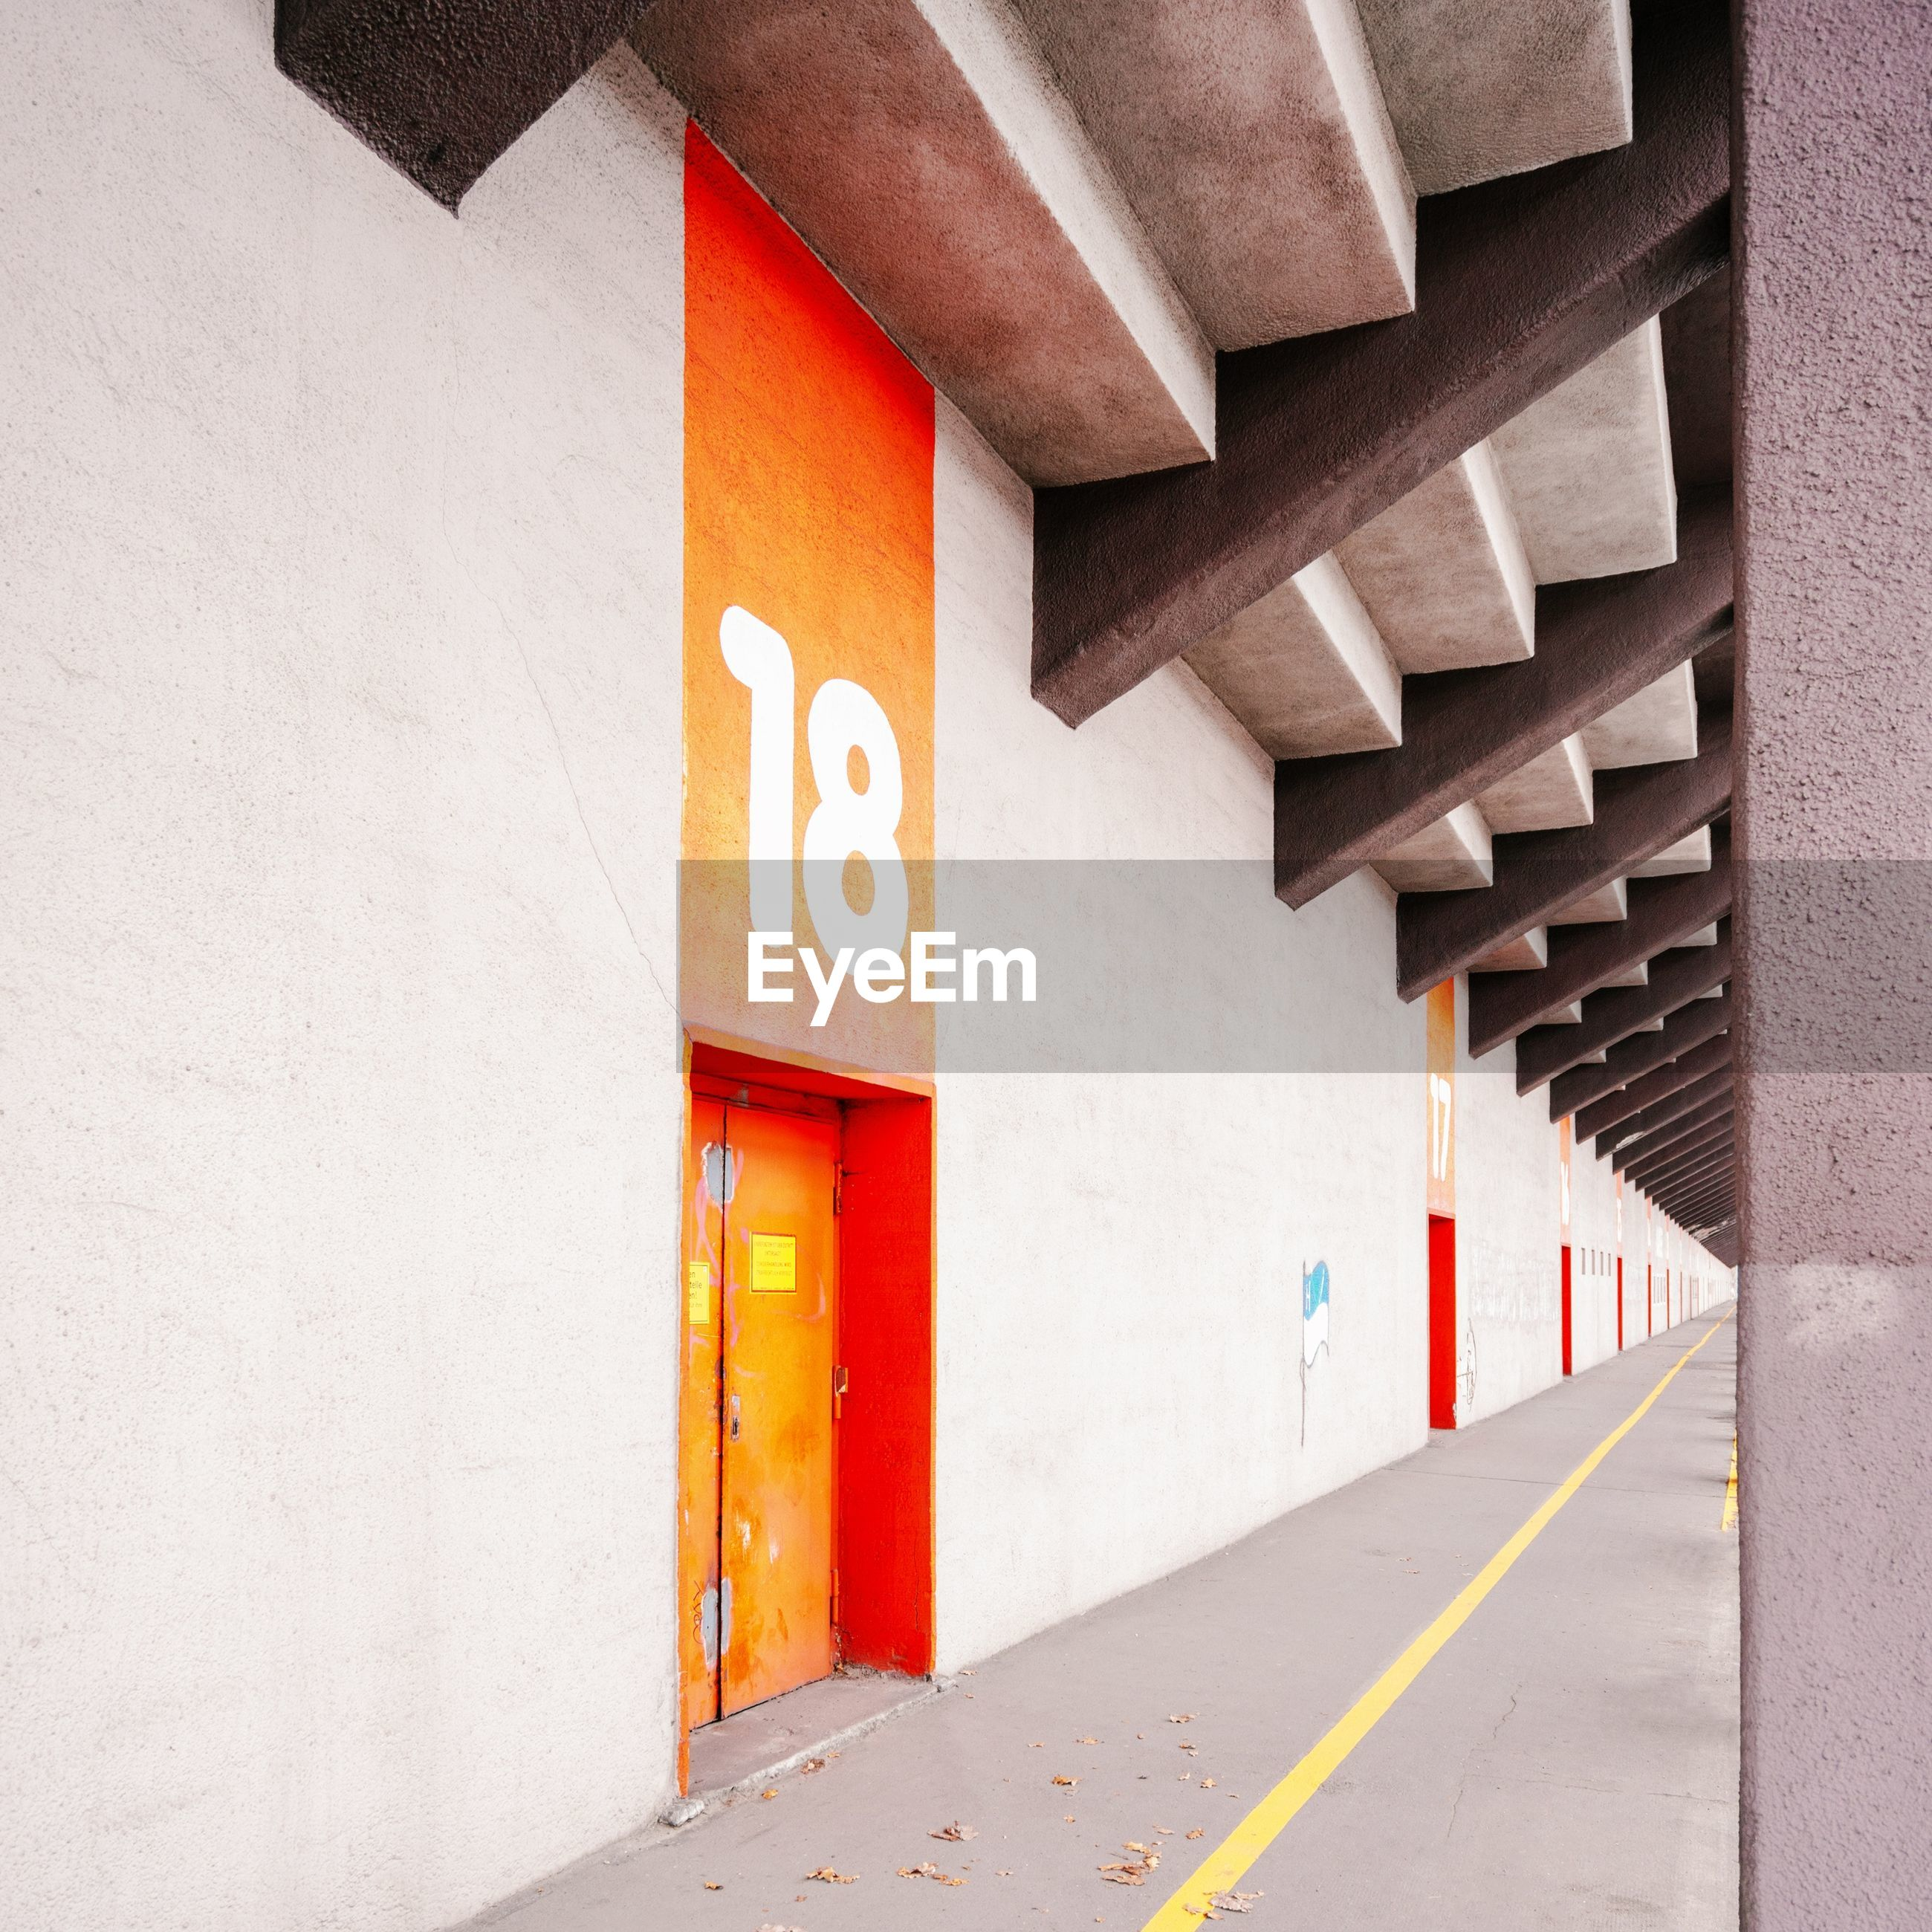 architecture, built structure, sign, no people, communication, direction, building exterior, day, wall - building feature, road, architectural column, number, transportation, building, guidance, the way forward, symbol, outdoors, red, orange color, parking garage, dividing line, ceiling